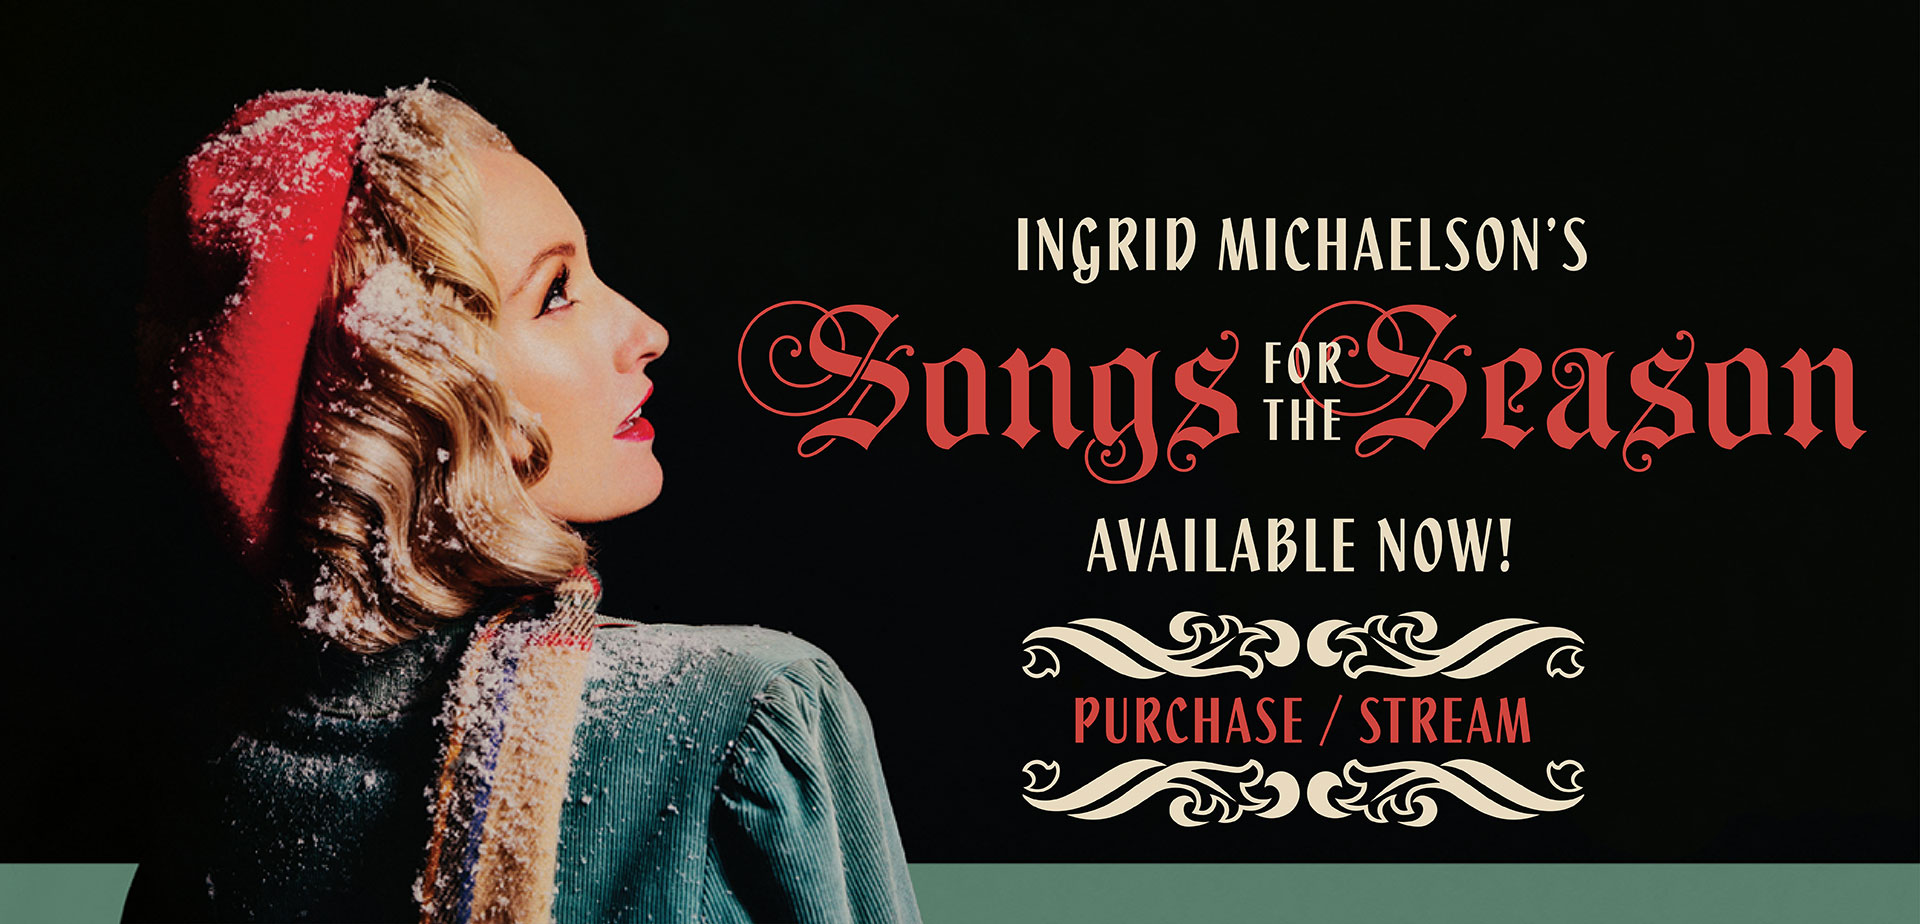 Ingrid Michaelson's Songs For The Season Available Now! Purchase/Stream